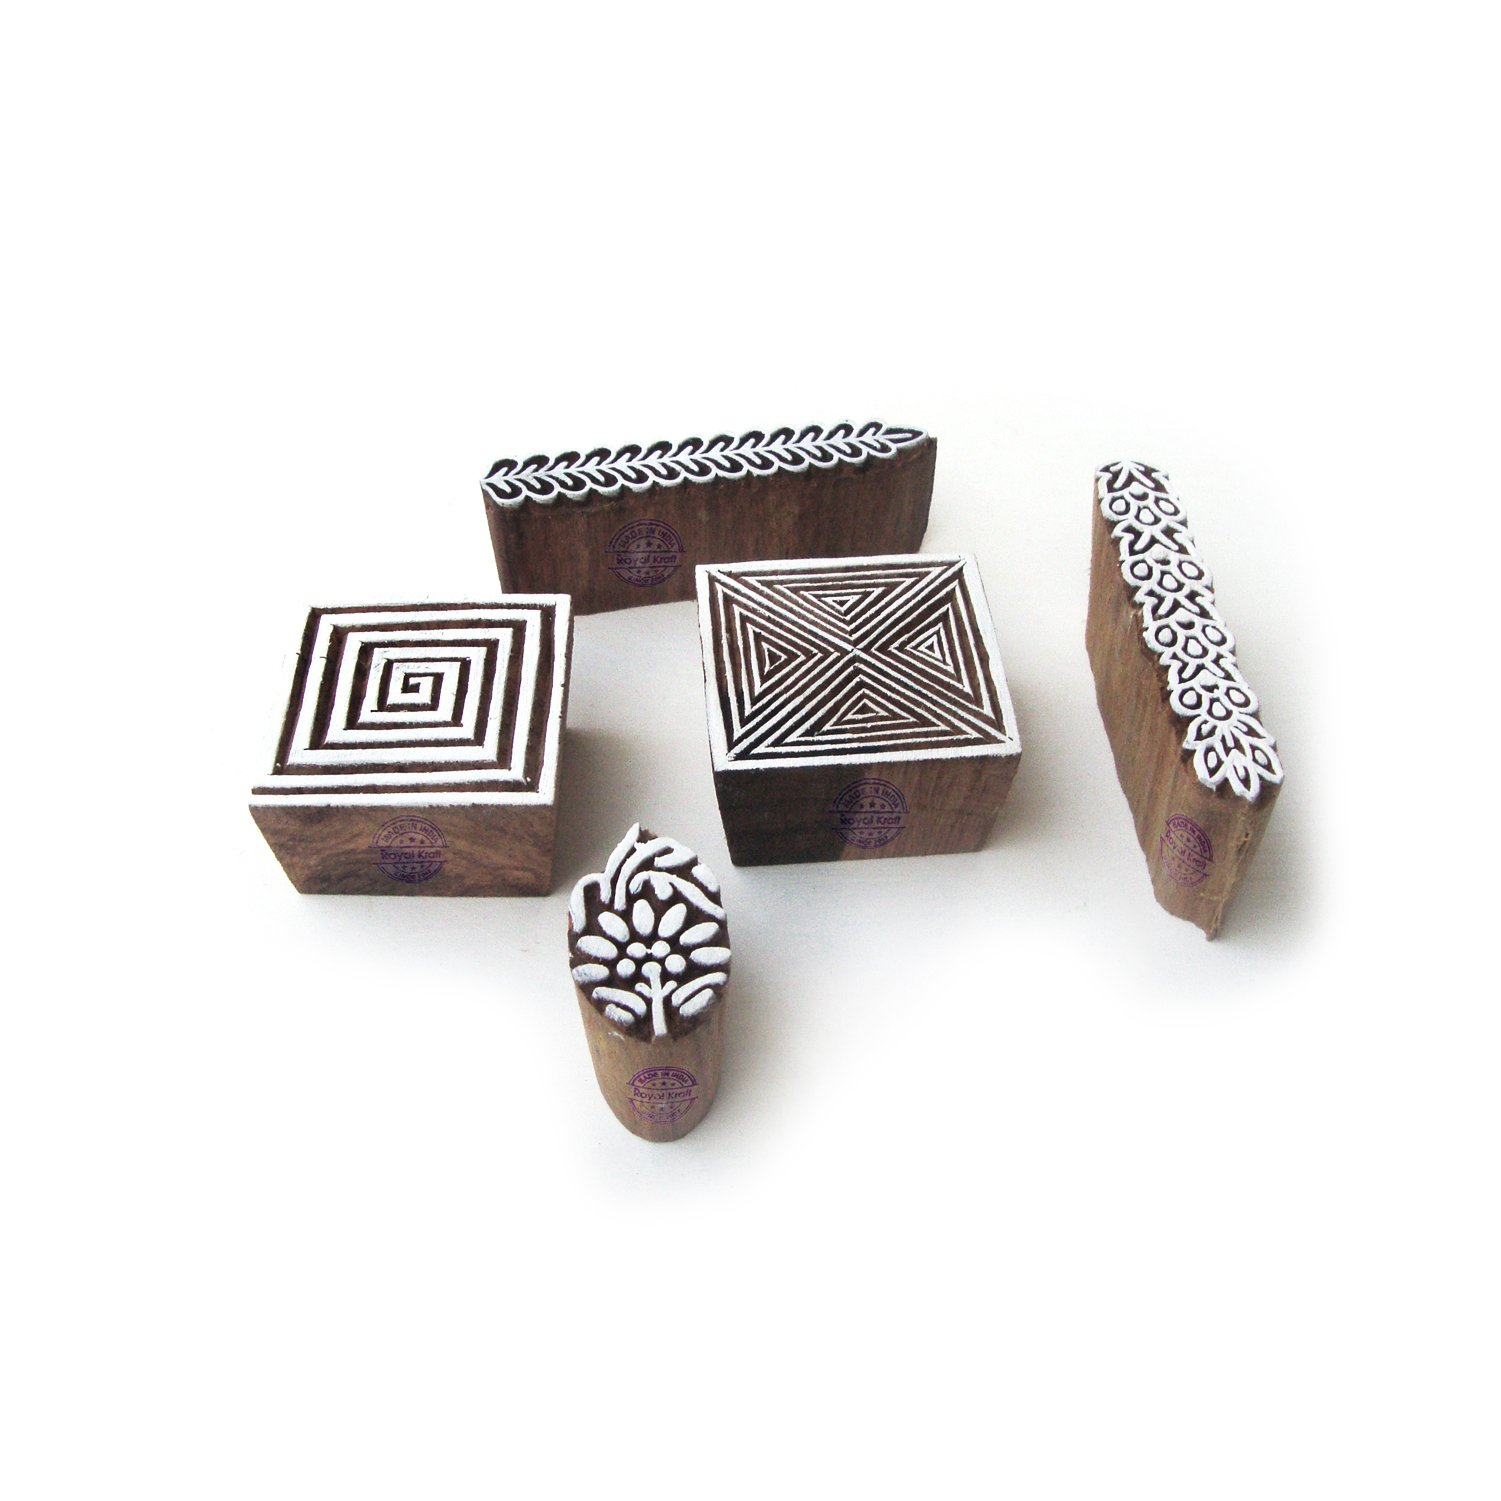 Asian Border and Square Pattern Wooden Printing Blocks (Set of 5)